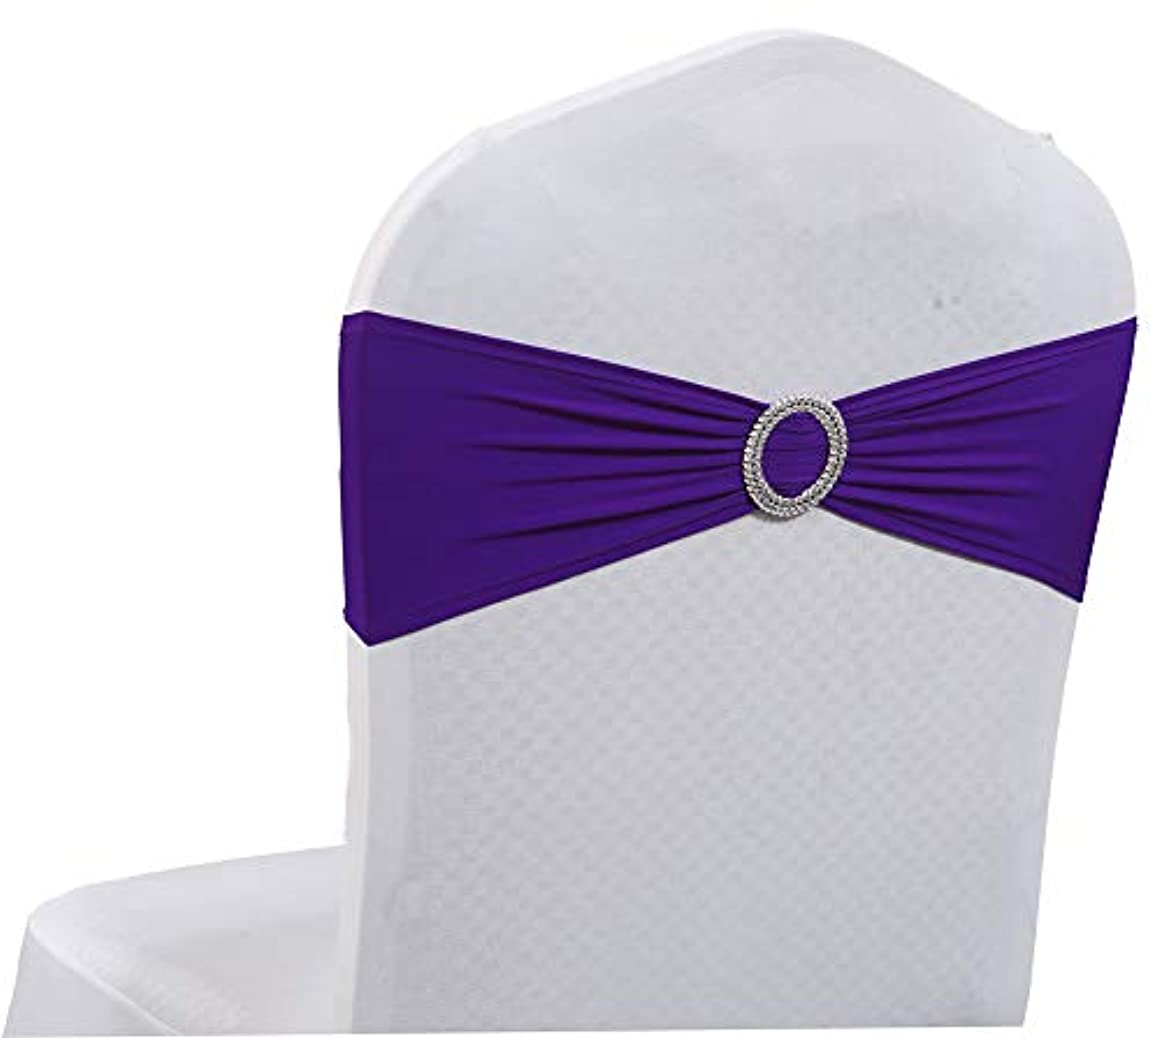 mds Pack of 25 Spandex Chair Sashes Bow sash Elastic Chair Bands Ties with Buckle for Wedding and Events Decoration Lycra Slider Sashes Bow - Cadbury Purple